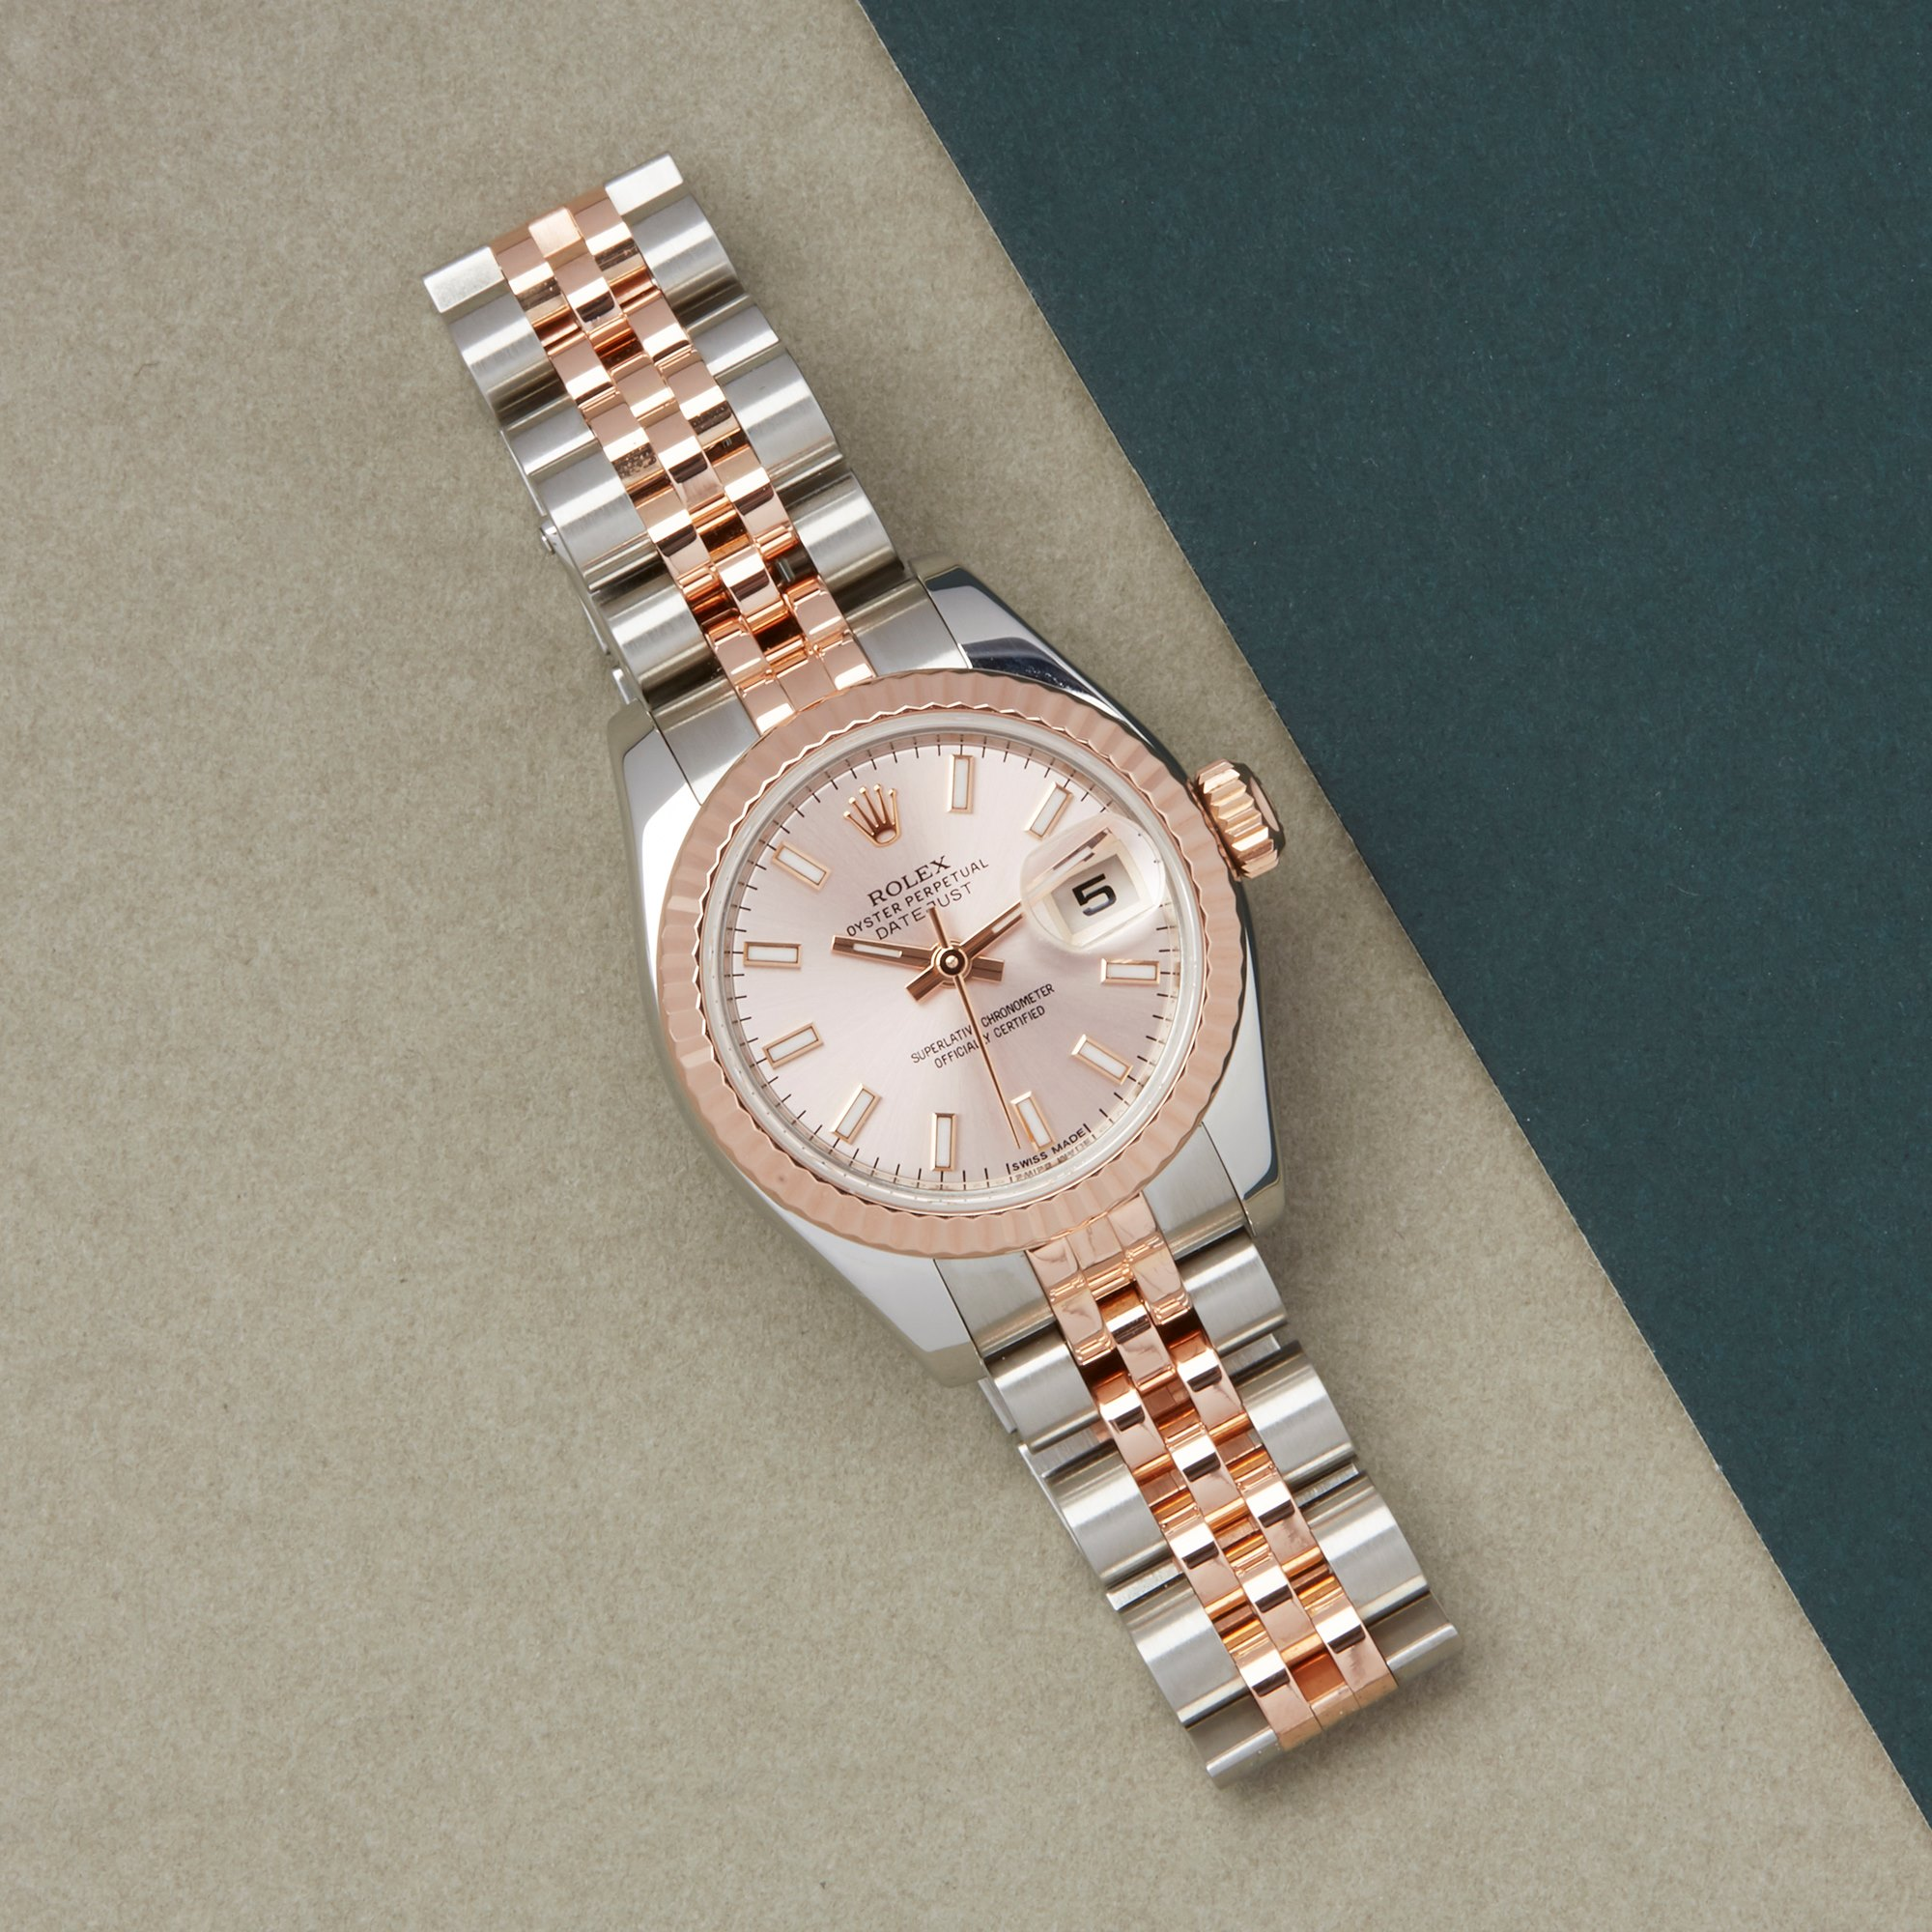 Rolex Datejust 26 179171 Ladies Rose Gold & Stainless Steel Watch - Image 7 of 10